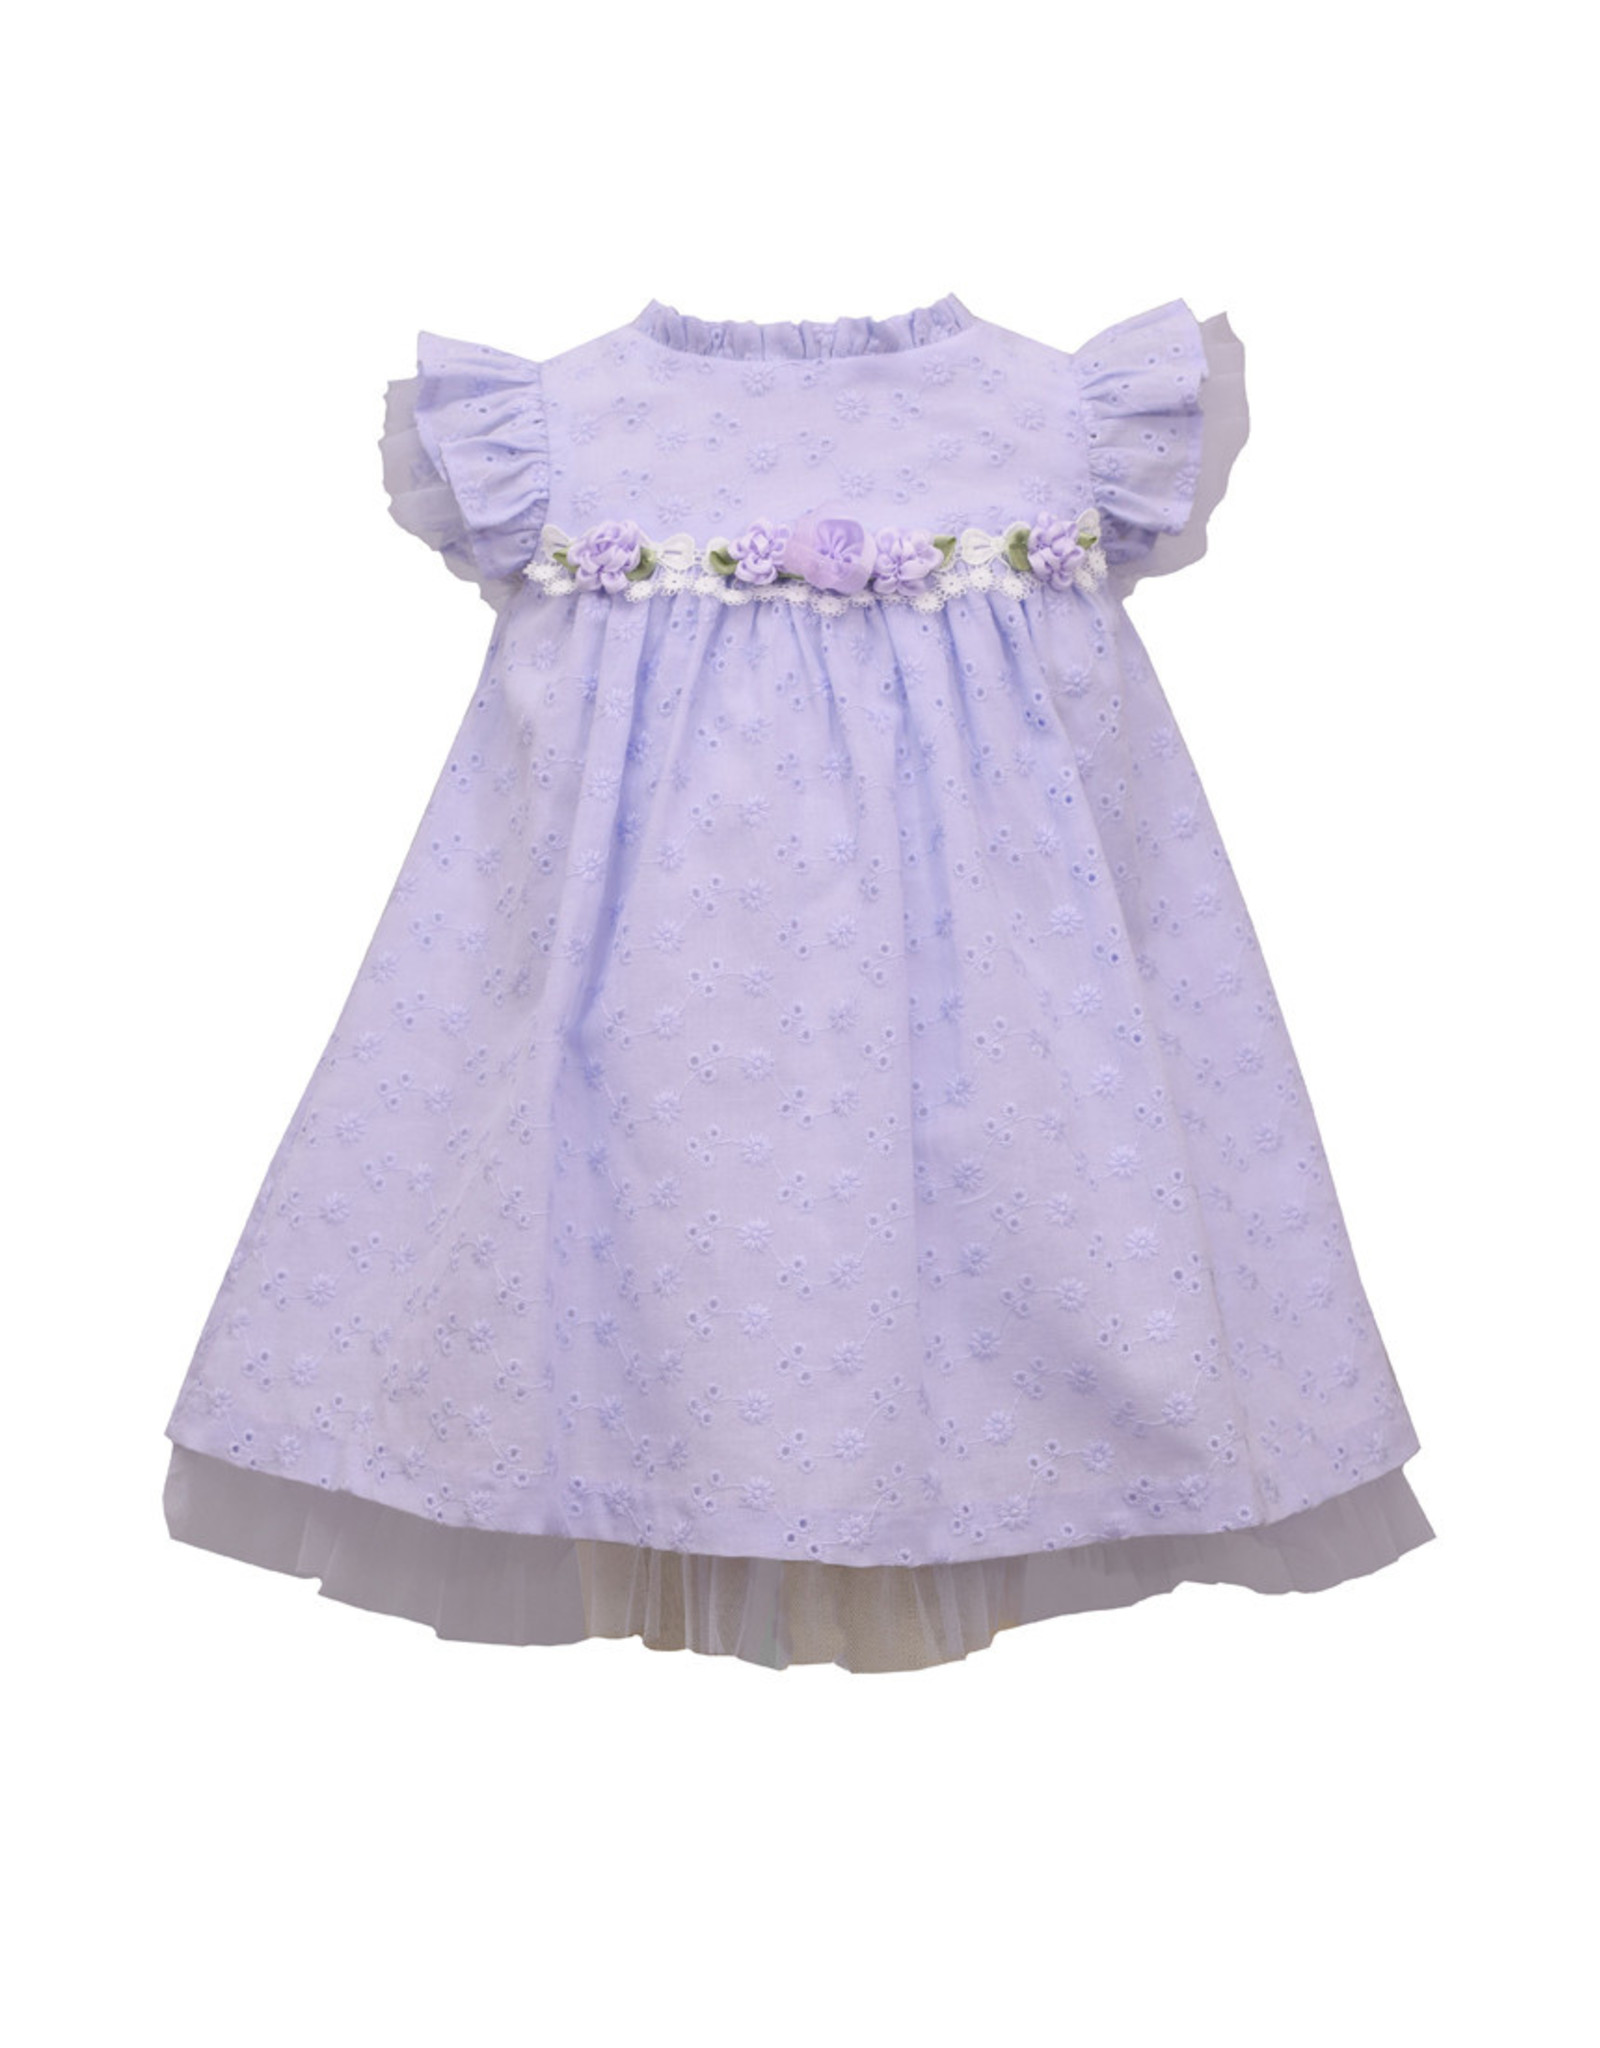 Bonnie  Jean Bonnie Baby- Lavender Flutter Eyelet Dress w/Bloomer